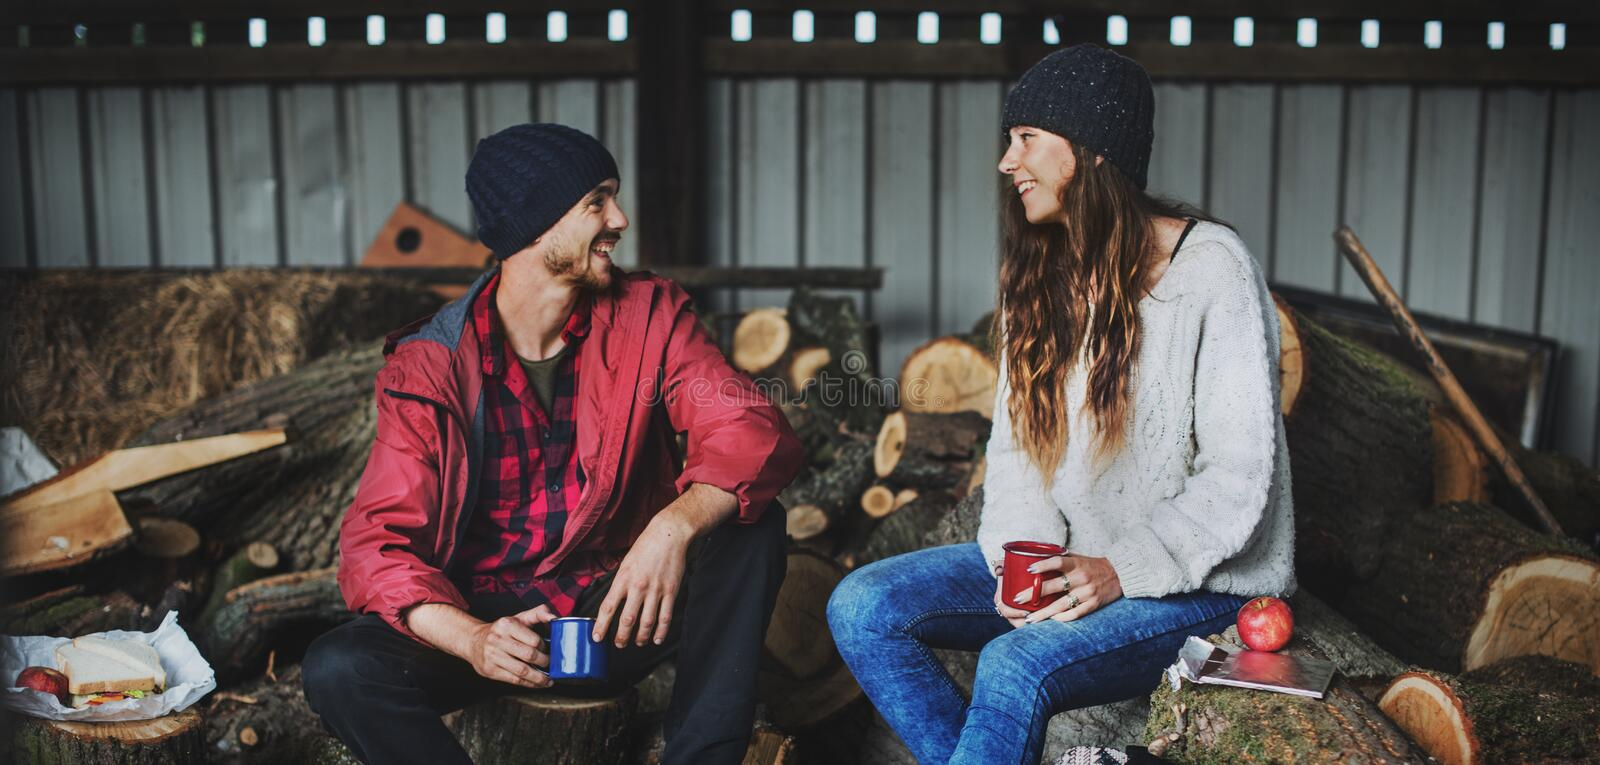 People Friendship Camping Sawmill Relaxation Togetherness Concept royalty free stock images